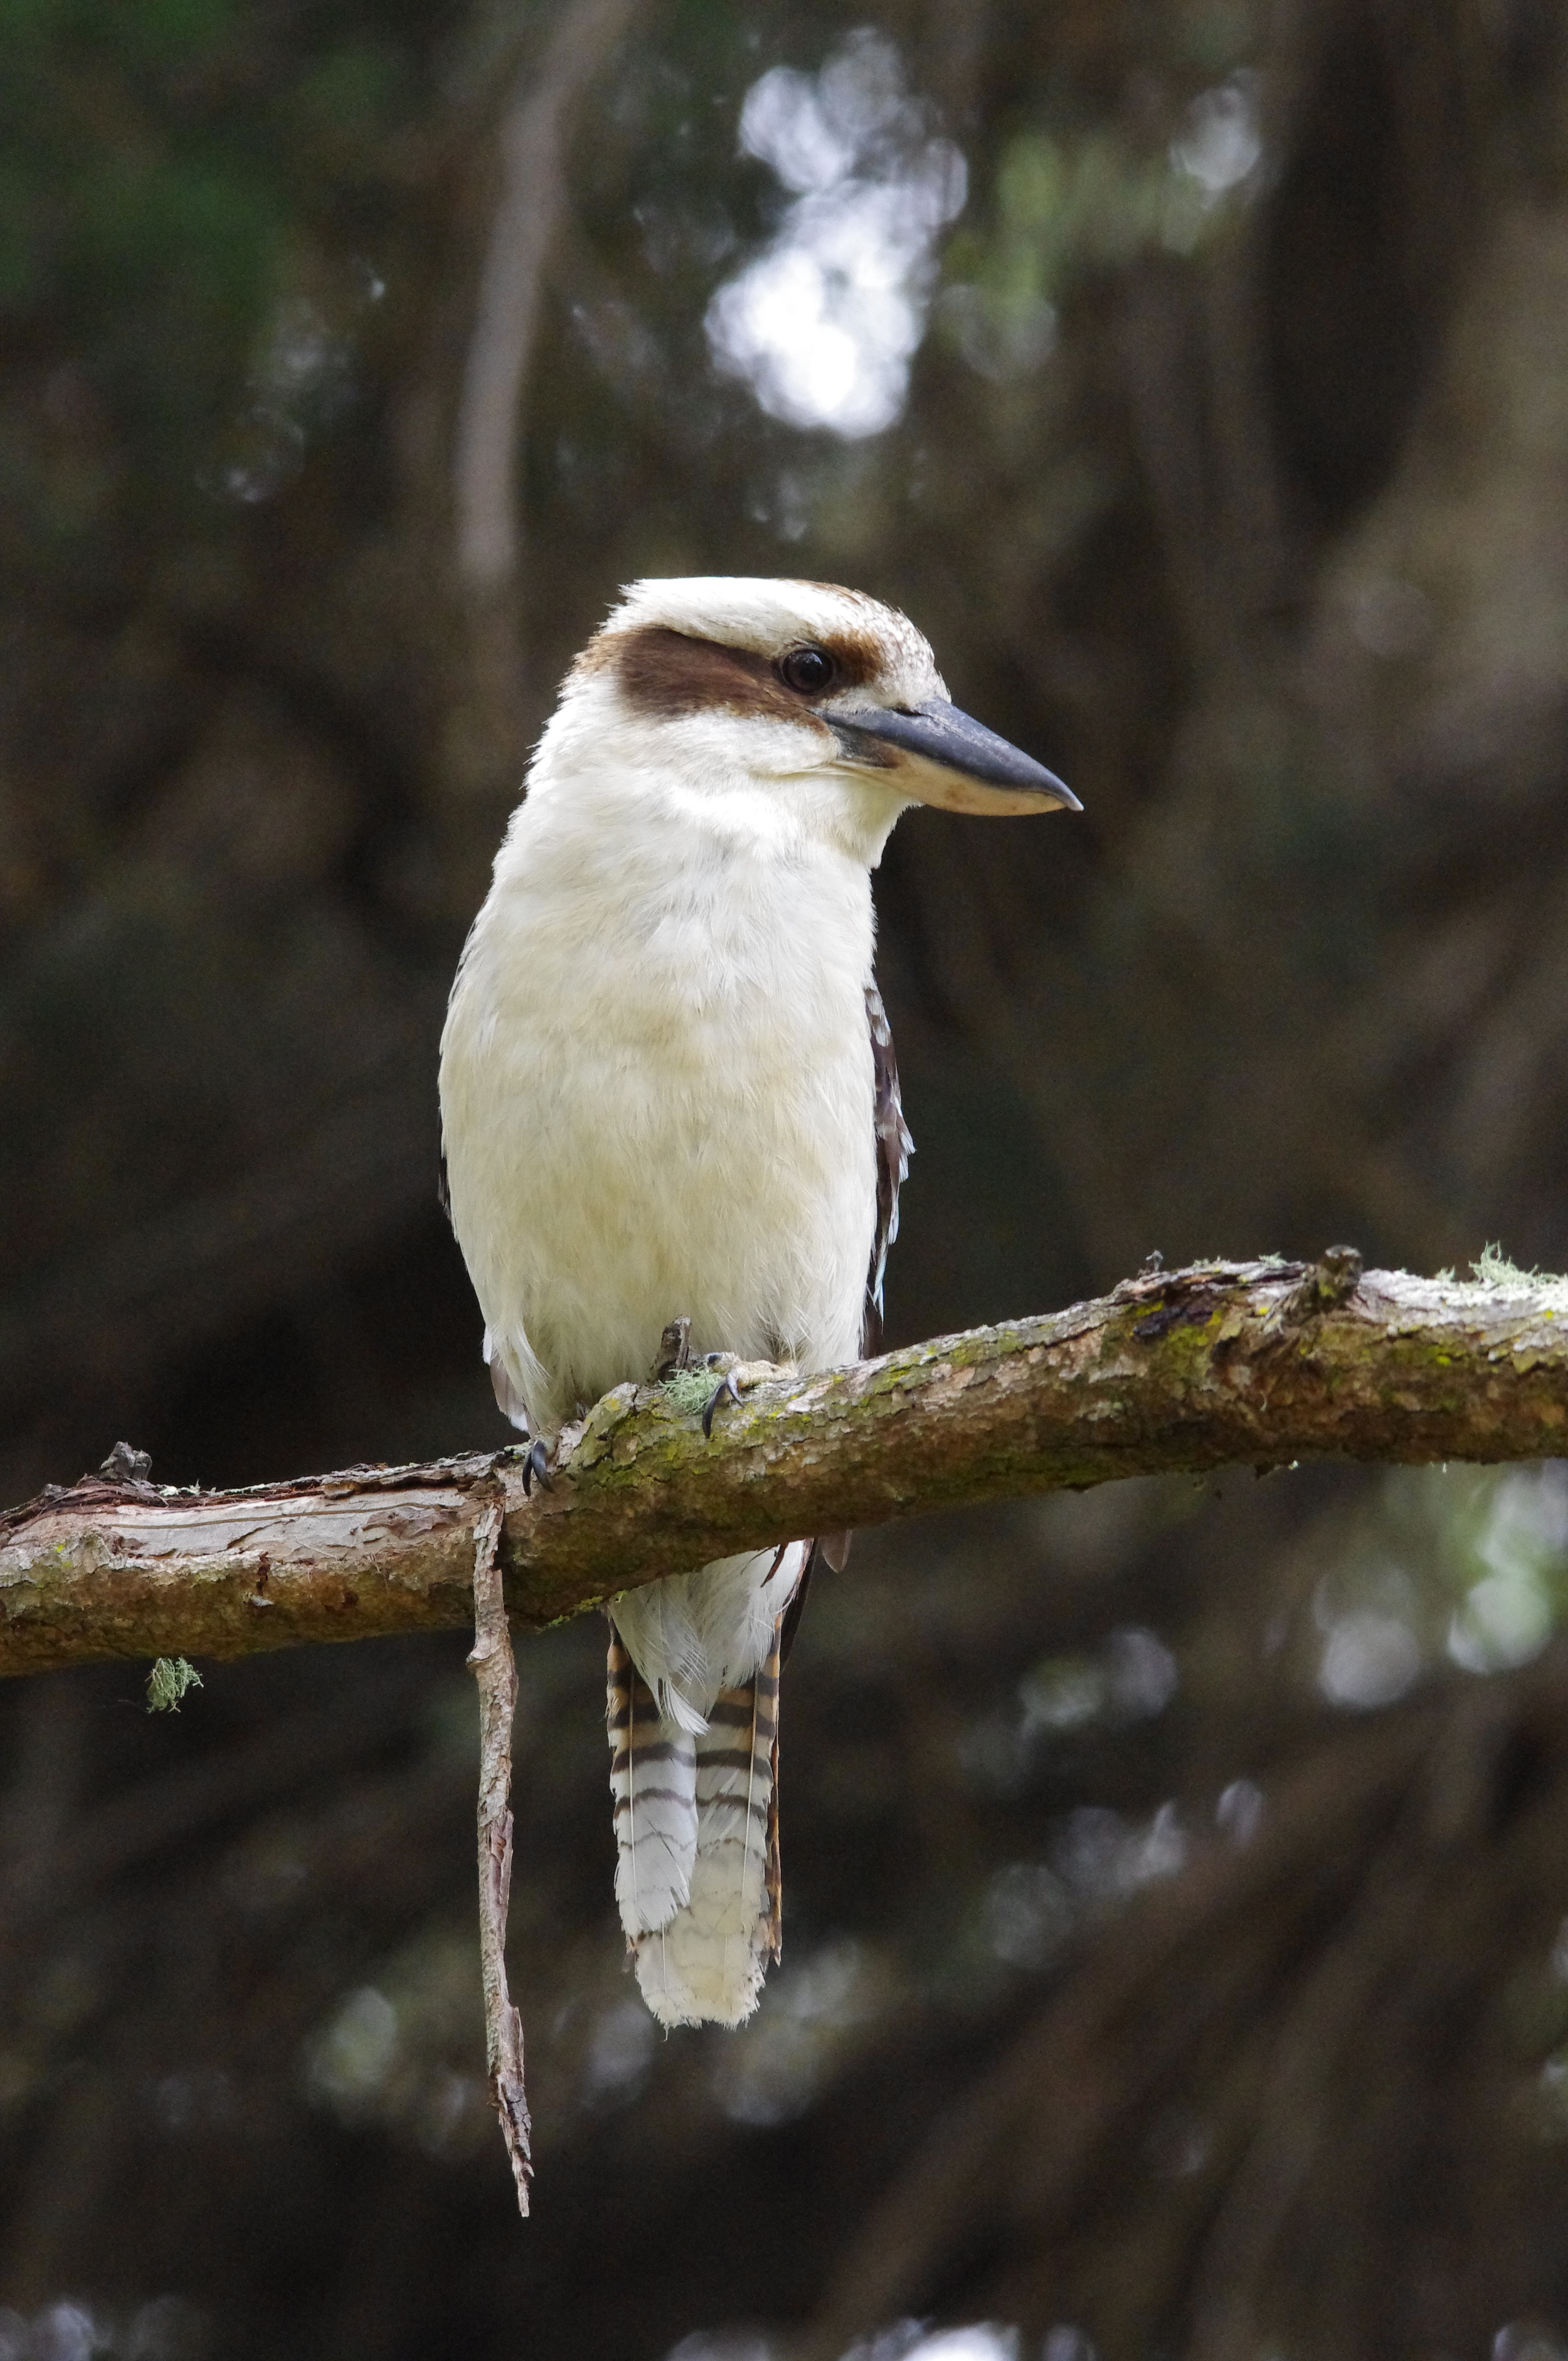 The kookaburra (Photo: Cathy CavAllo)